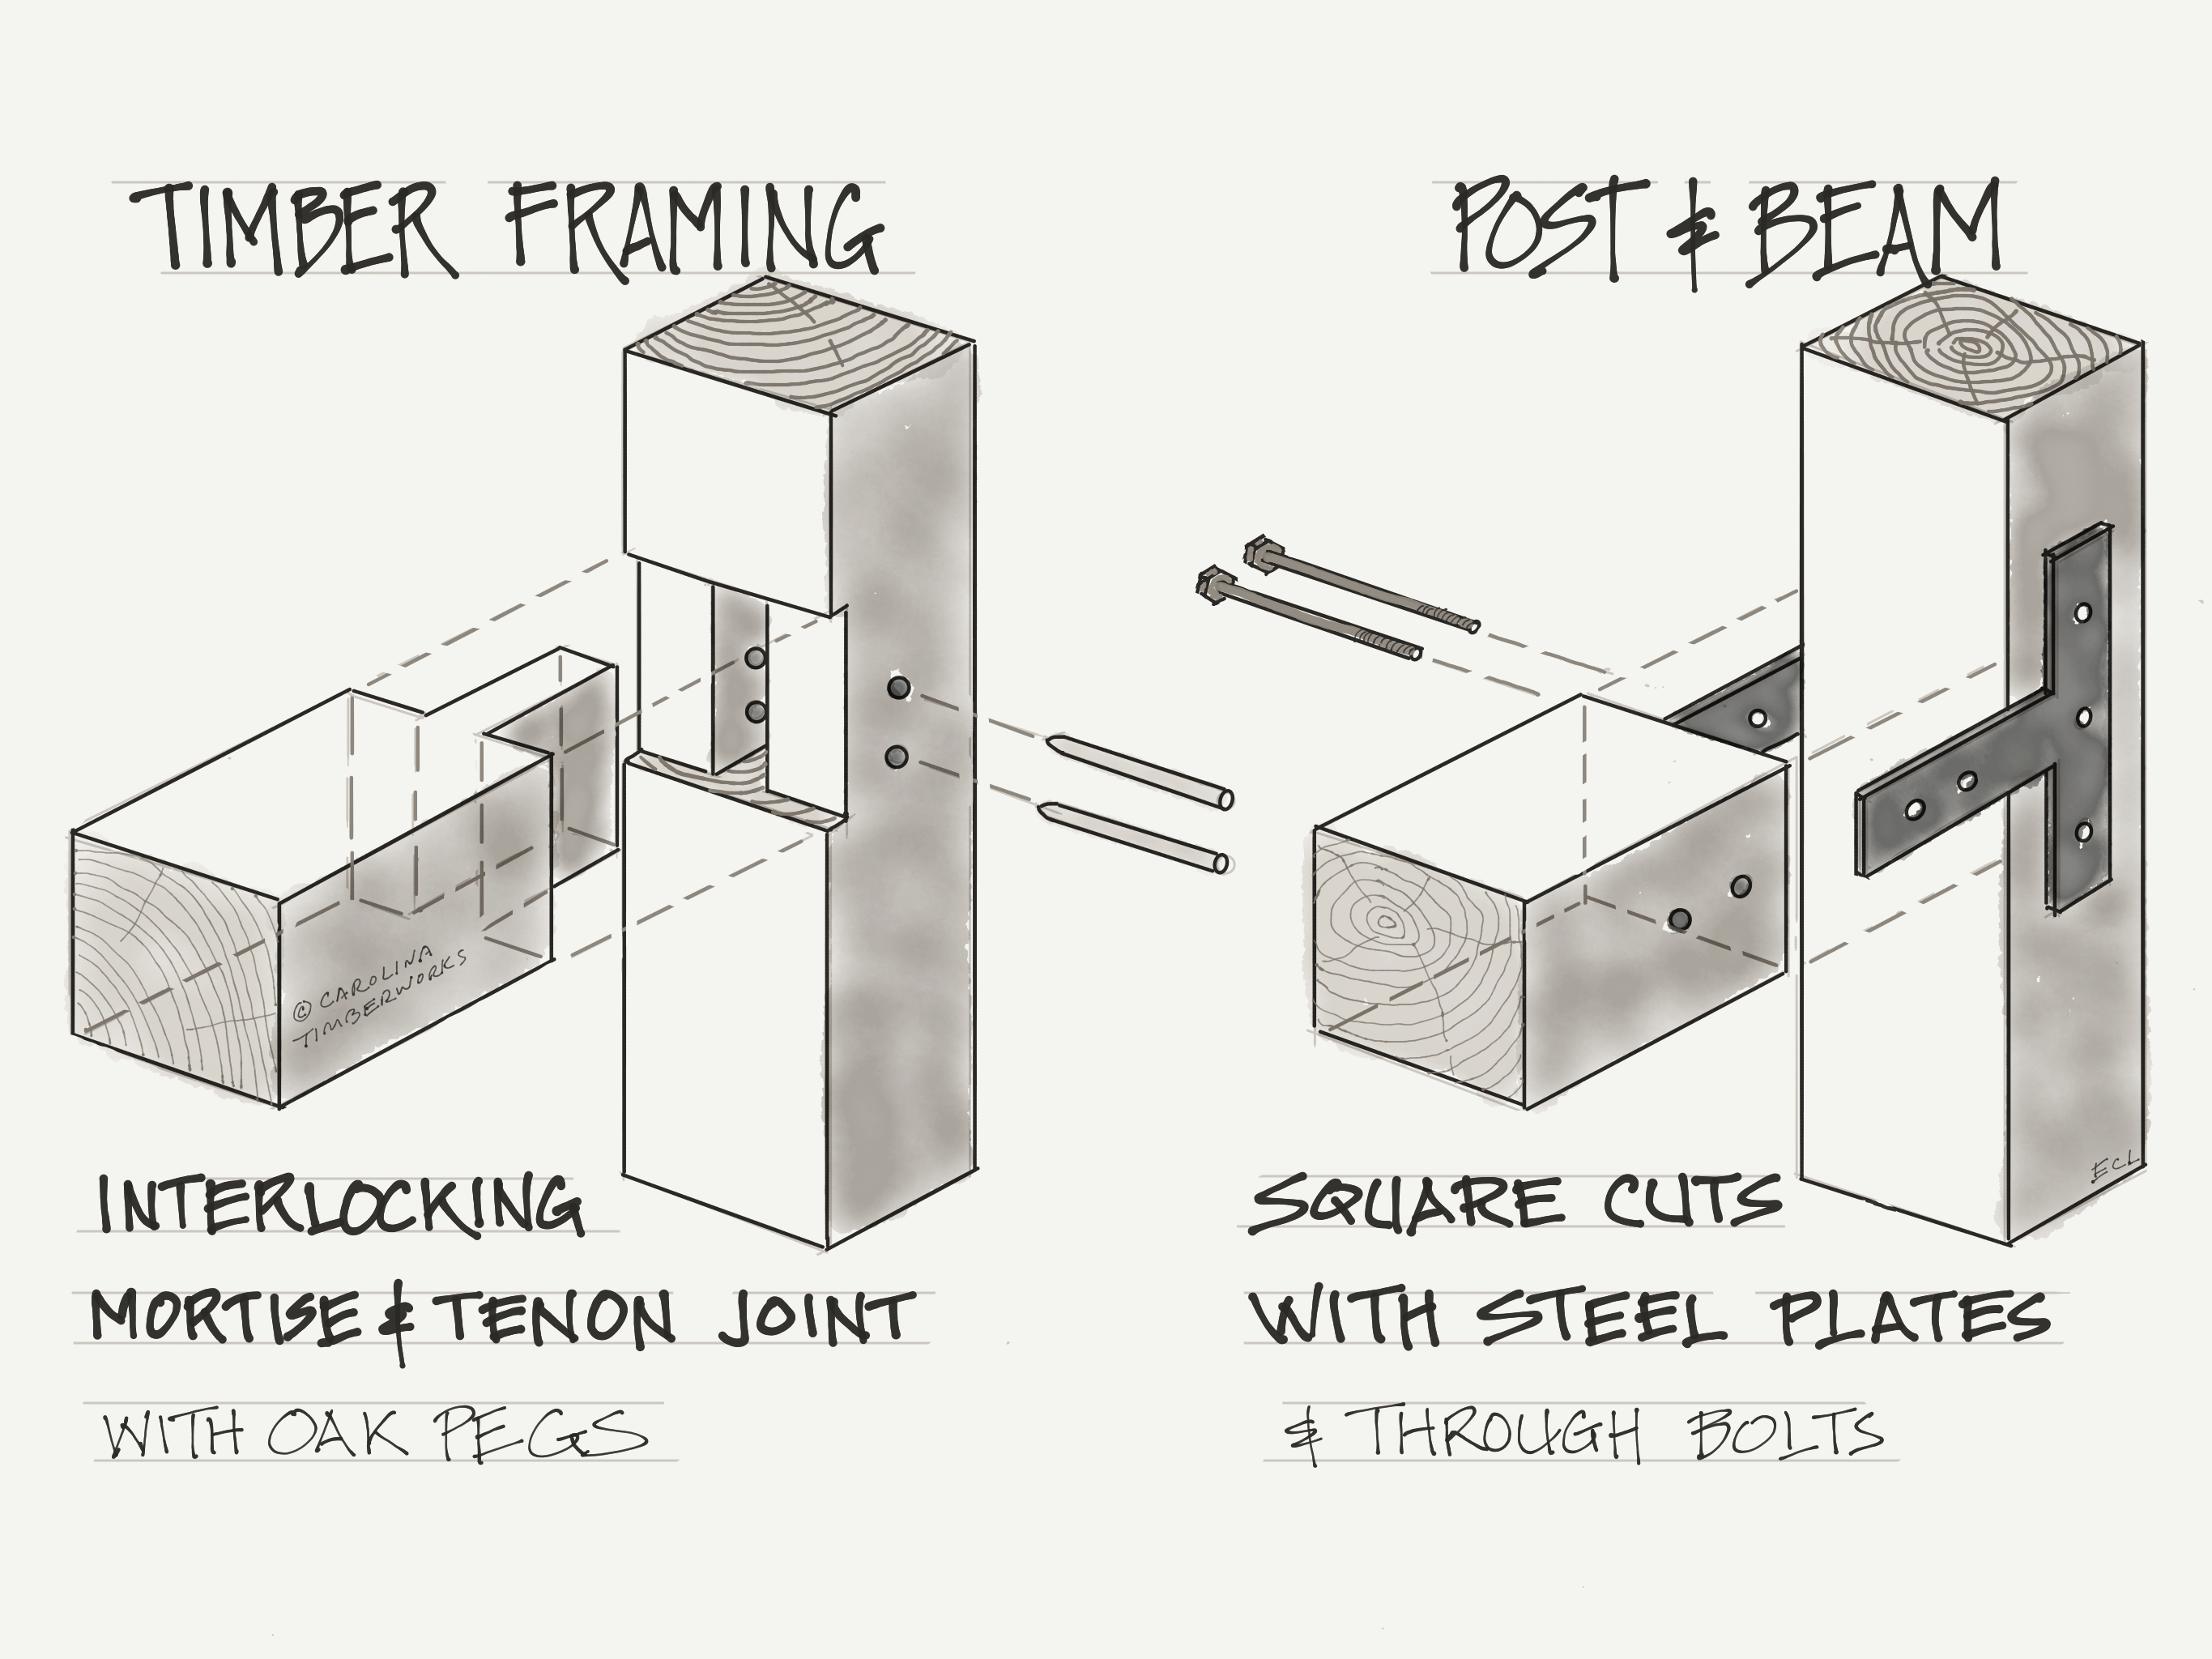 difference between timber frame and post and beam